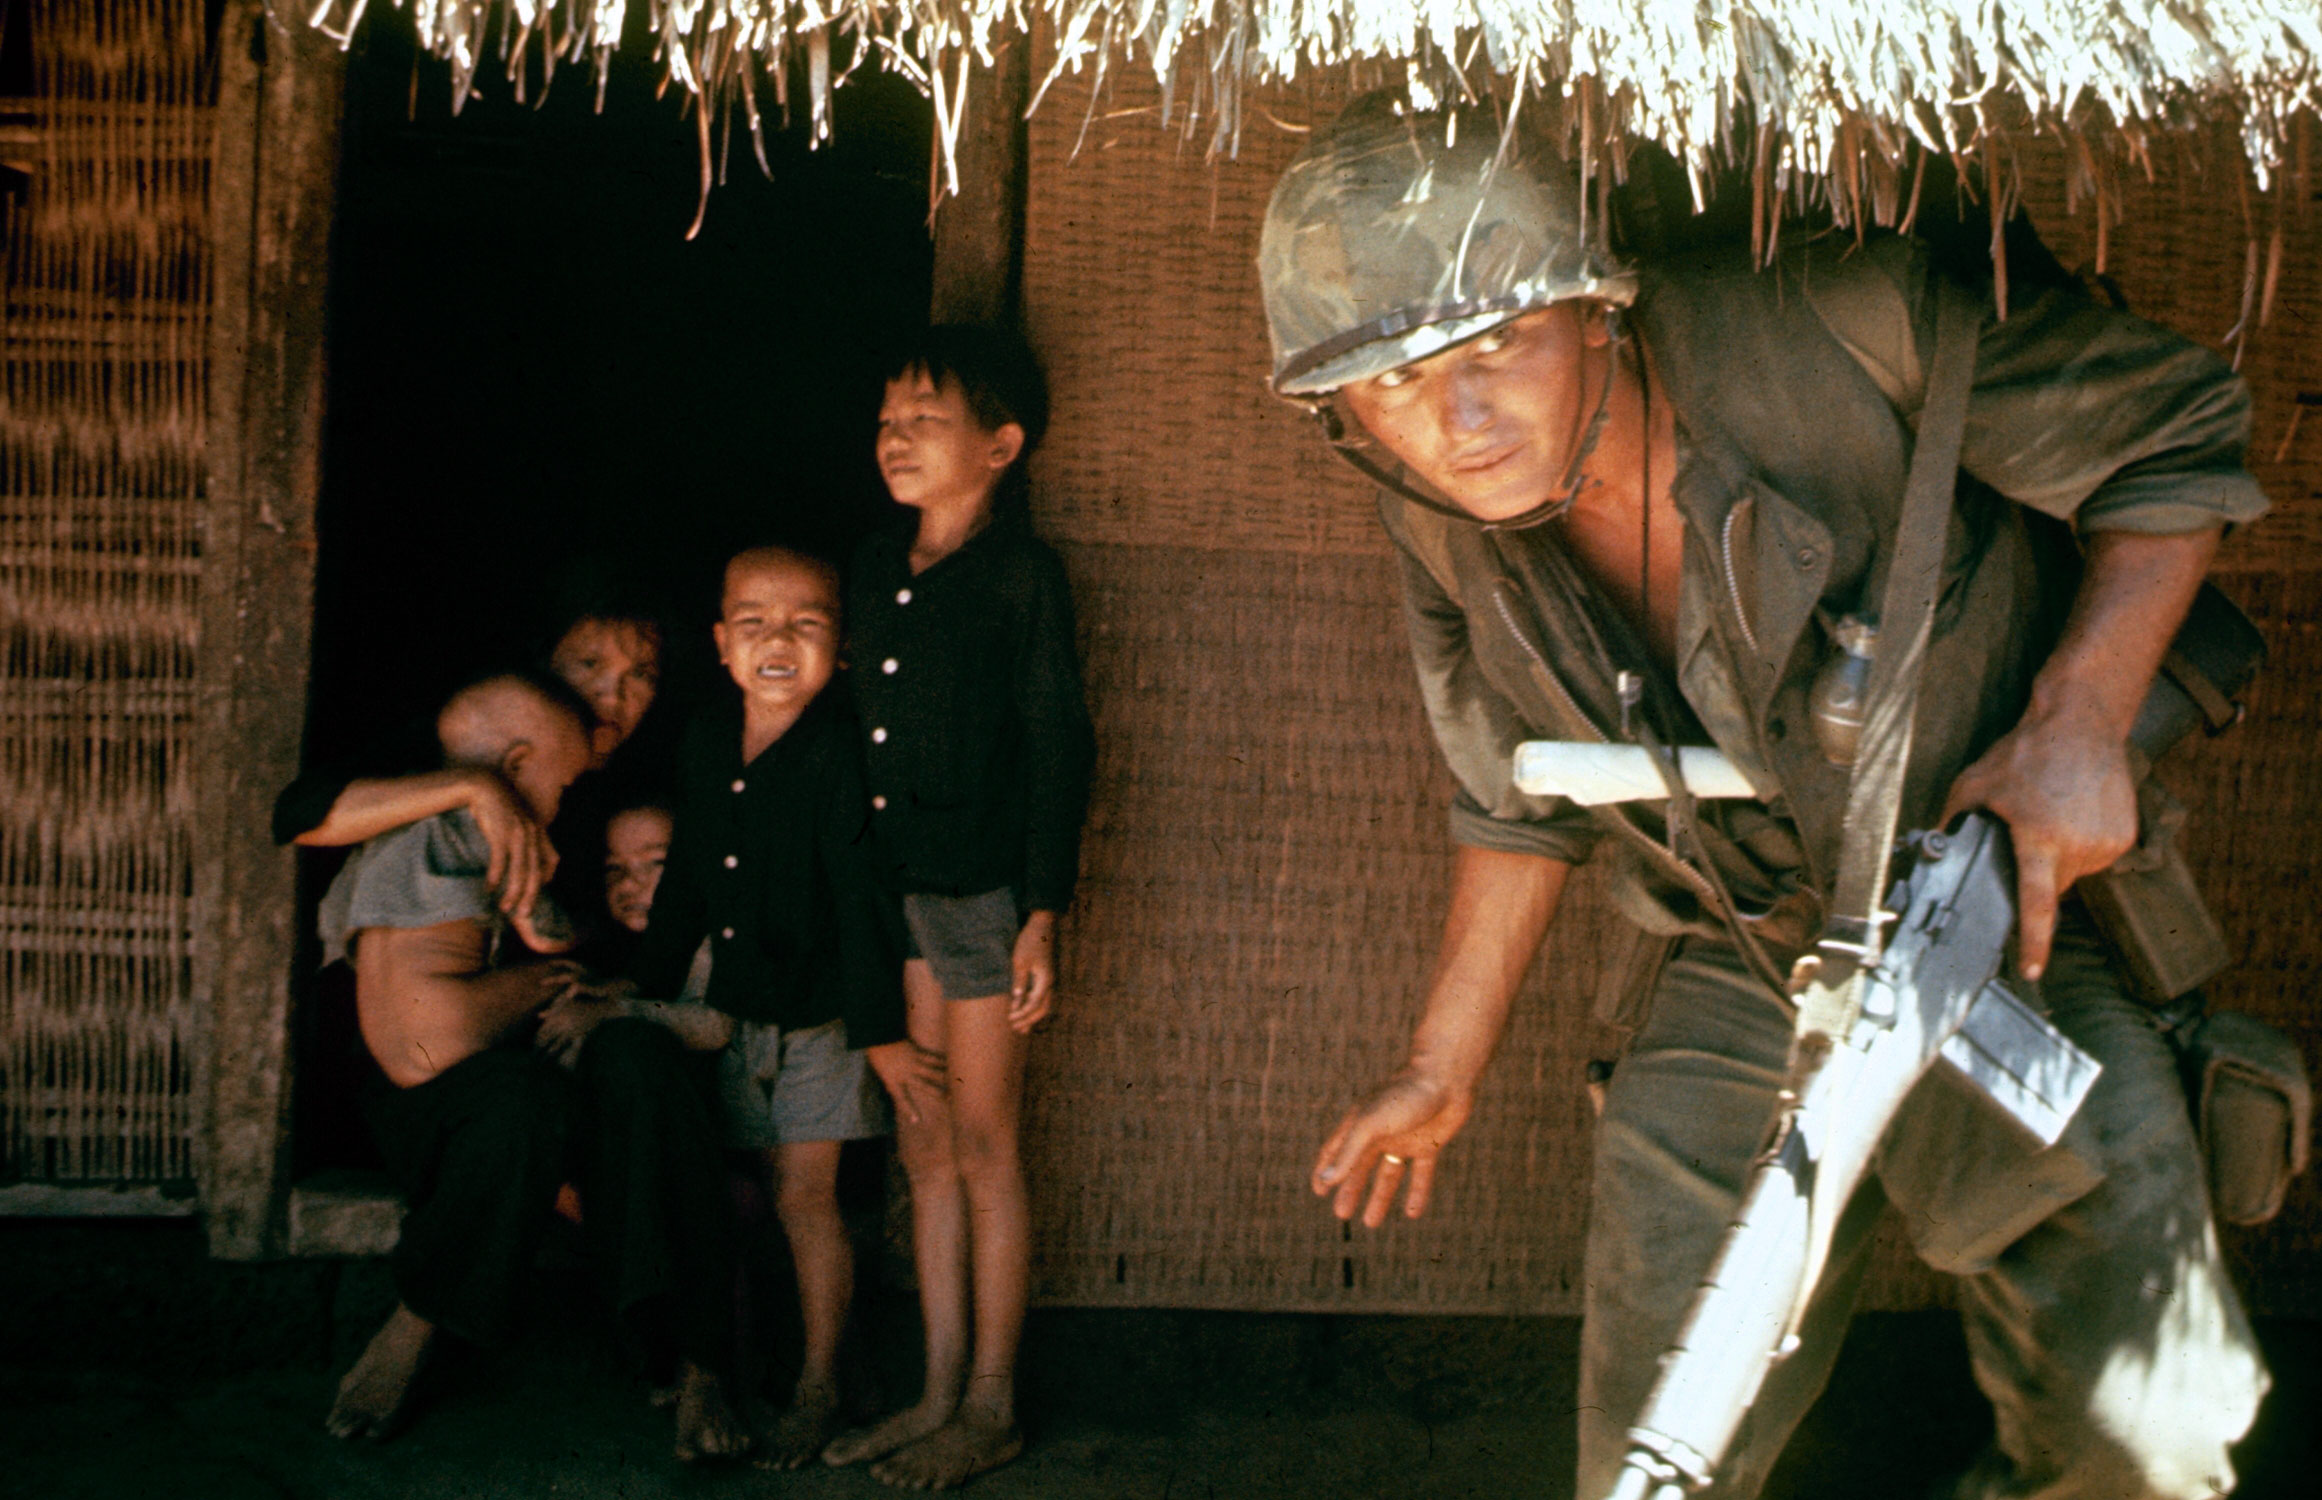 Caption from LIFE. Within the village children shrink from a scout hunting the V.C. who strike from tunnels under huts.